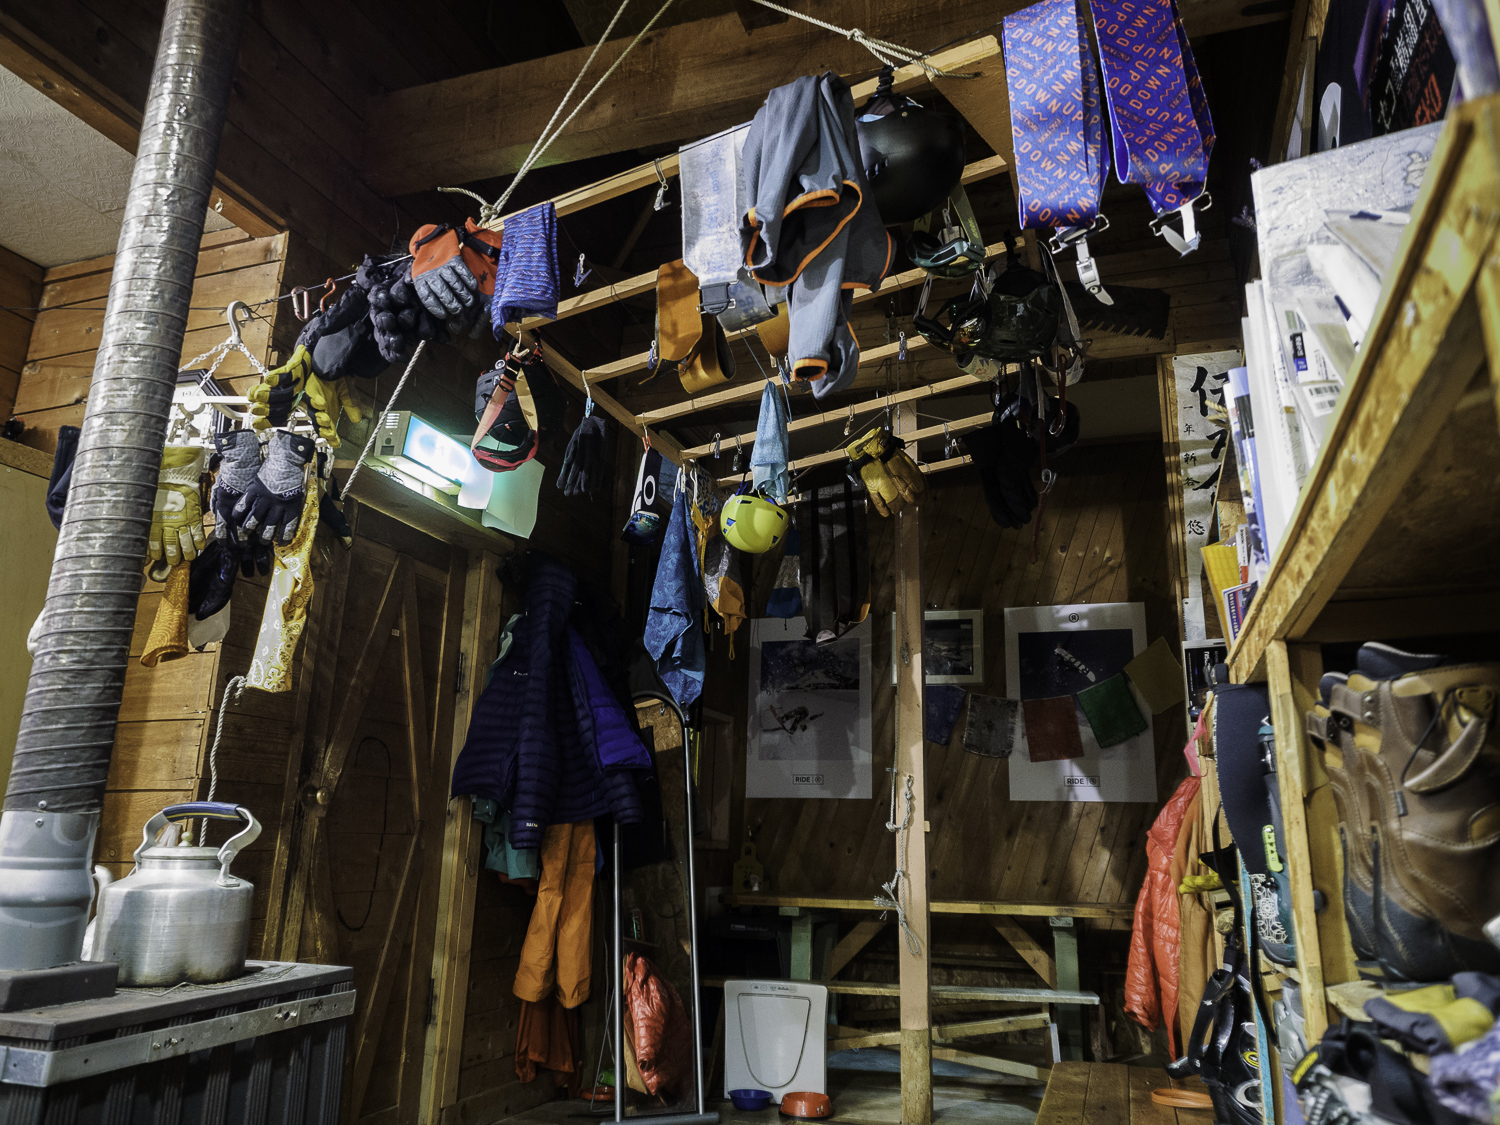 Time to Dry Gear before Tomorrows Tour - Woodpeckers Lodge